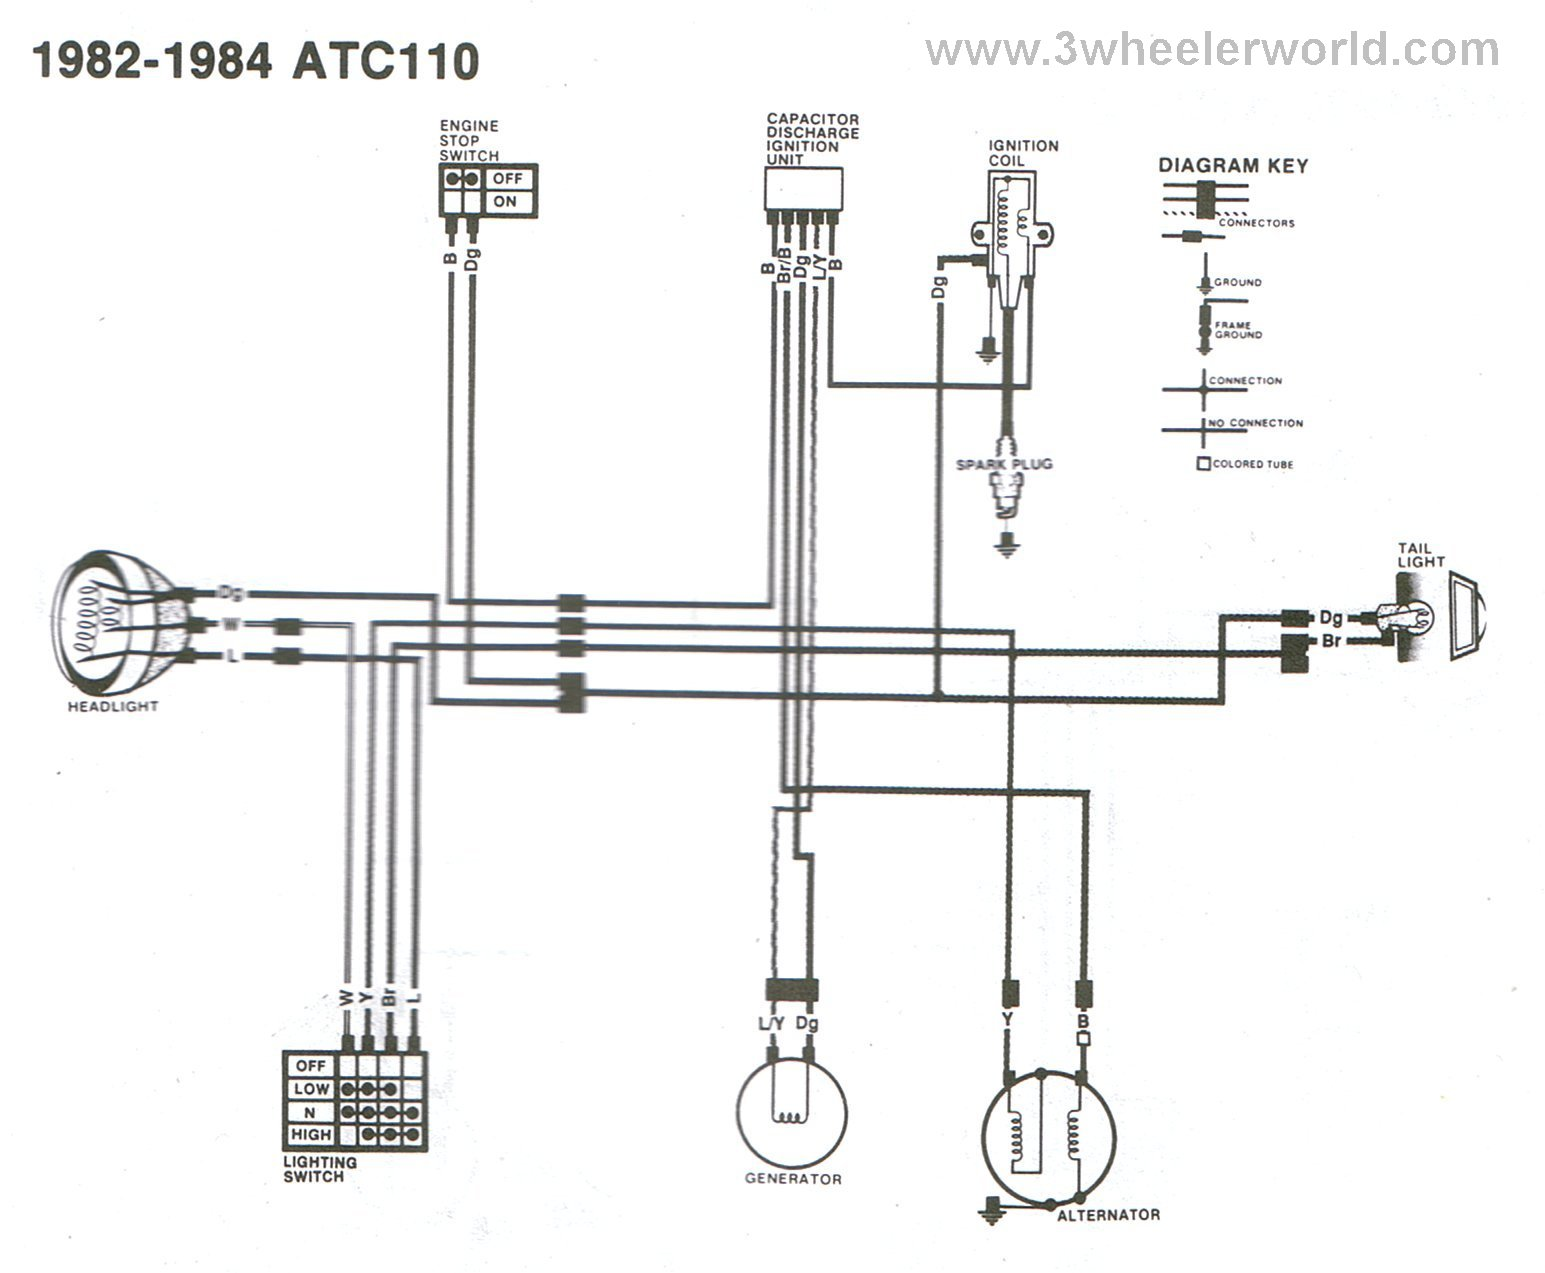 Colored Ct70 Wiring Diagram K 1 Free Download Diagrams Honda Amusing K2 Images Best Image Engine Amazing Electrical And At Elite